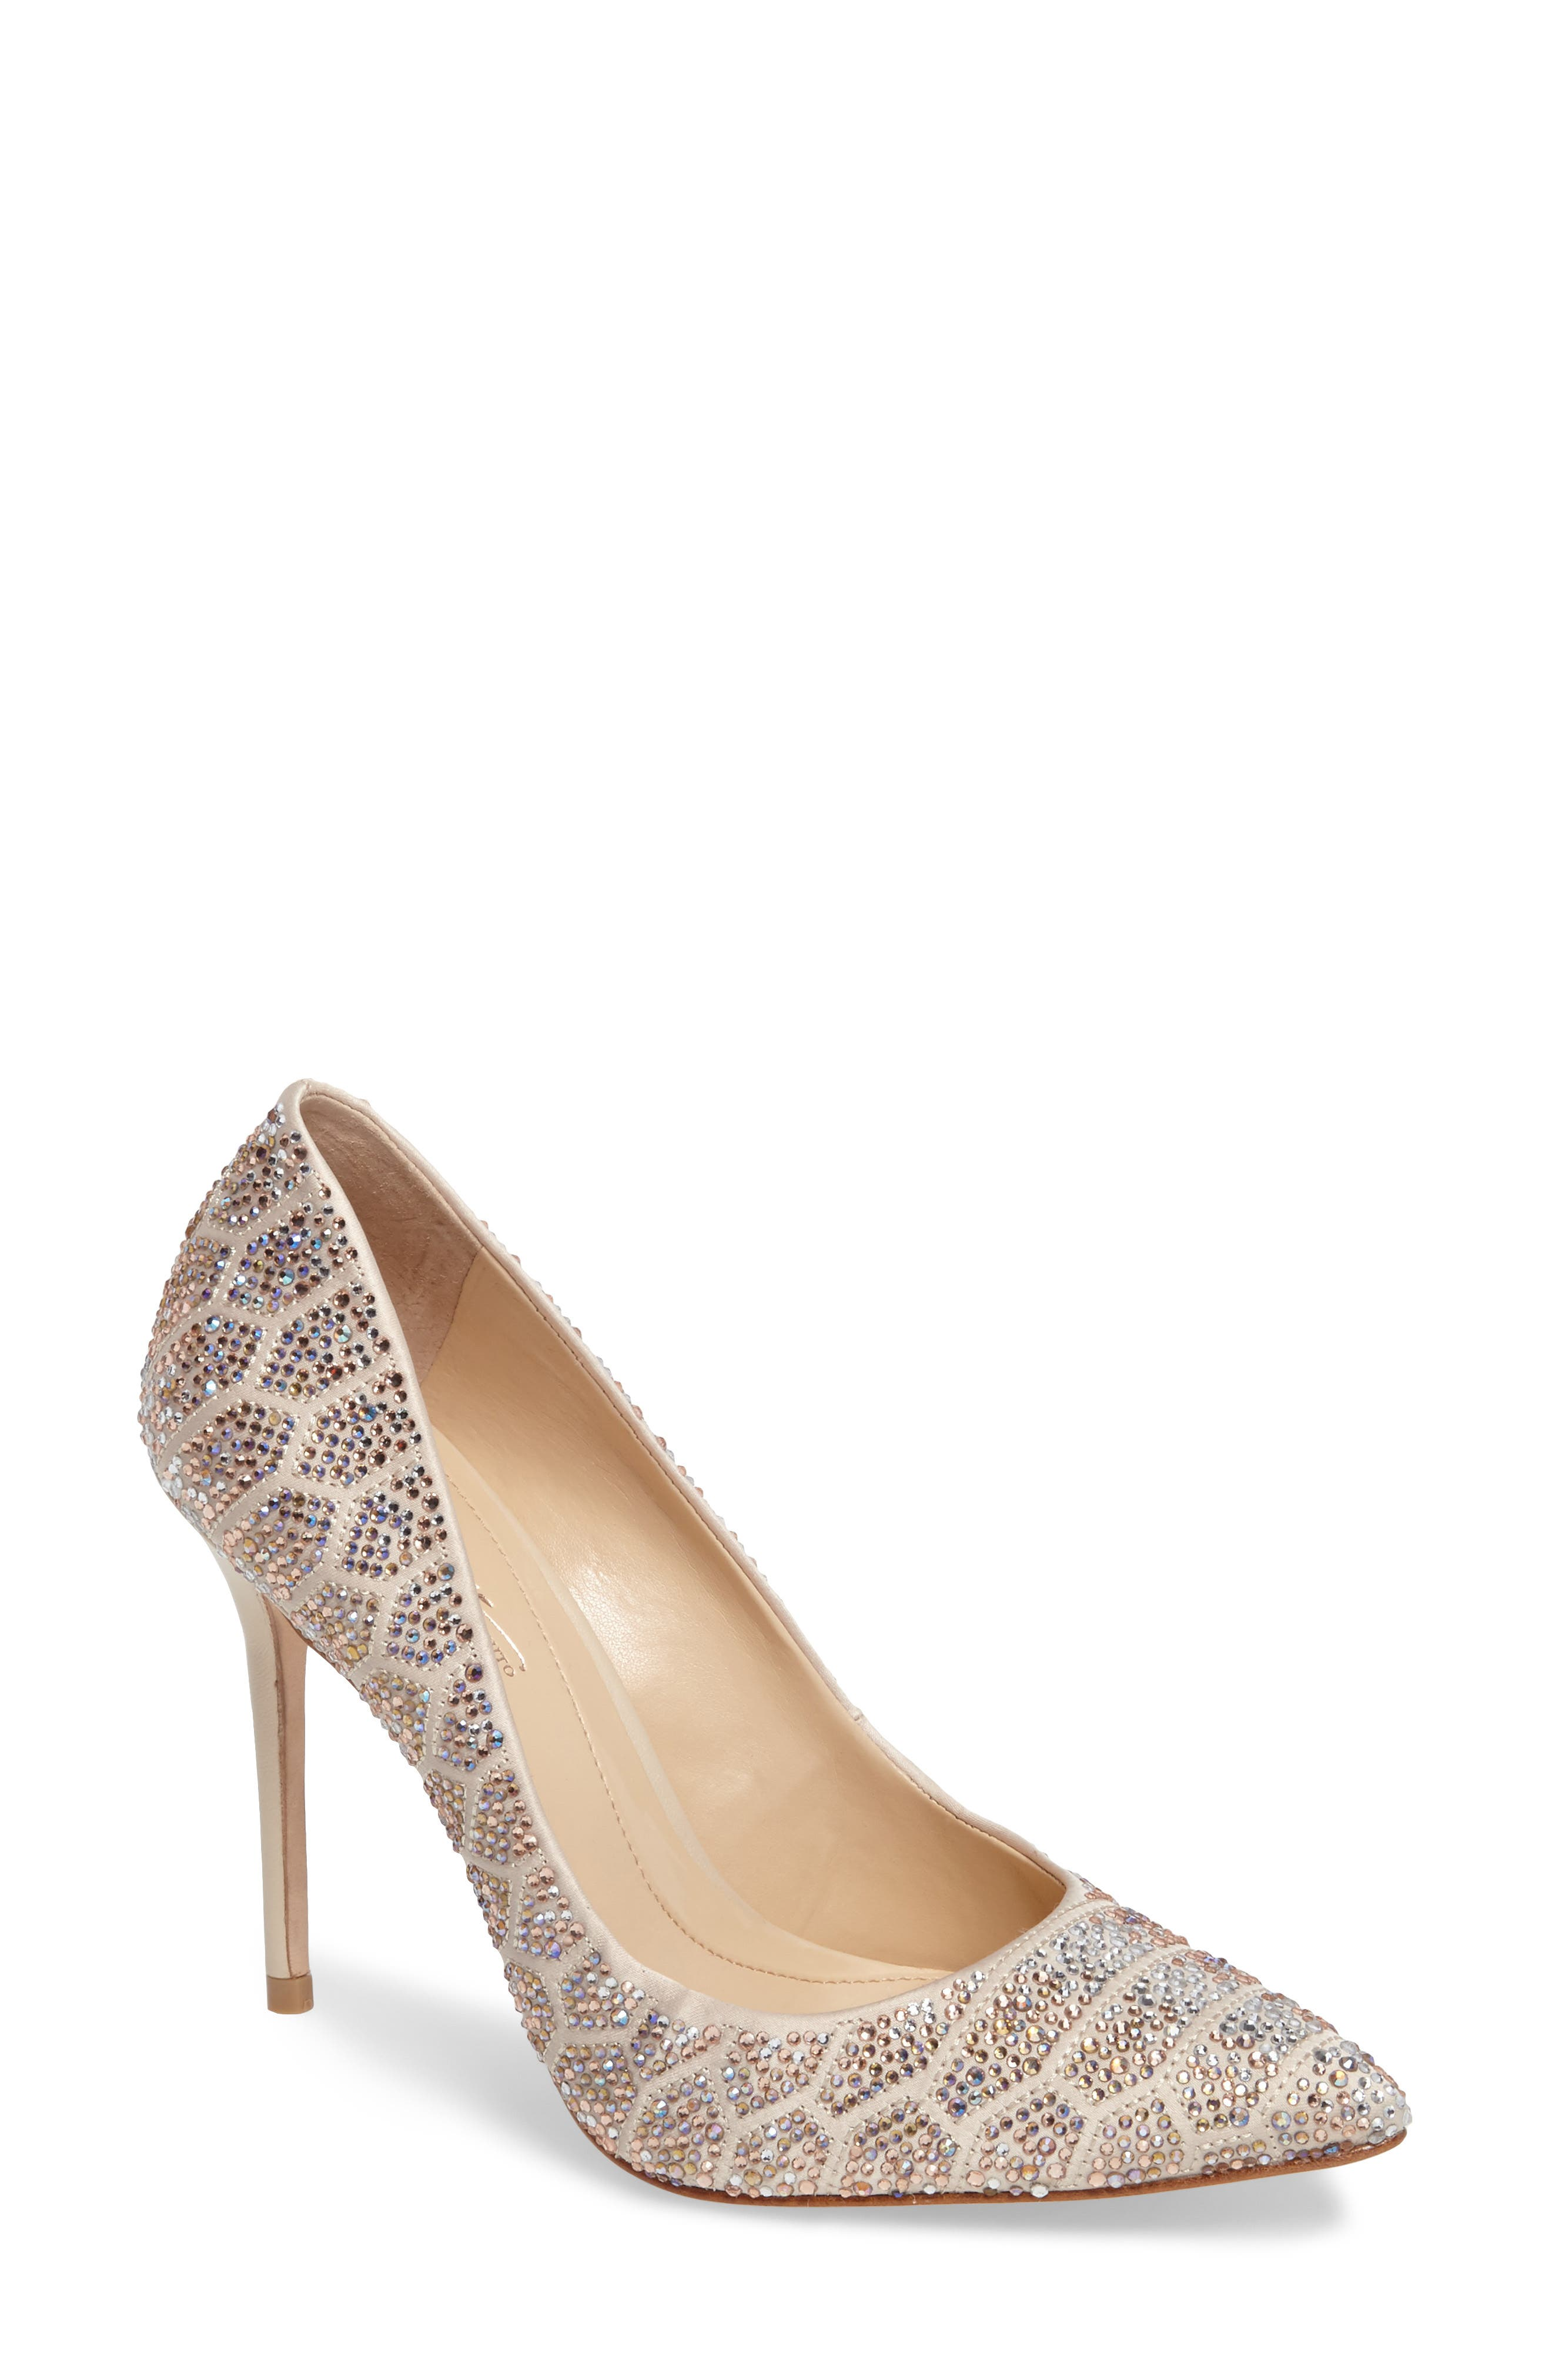 Imagine Vince Camuto 'Olivier' Pointy Toe Pump,                             Main thumbnail 1, color,                             Light Sand